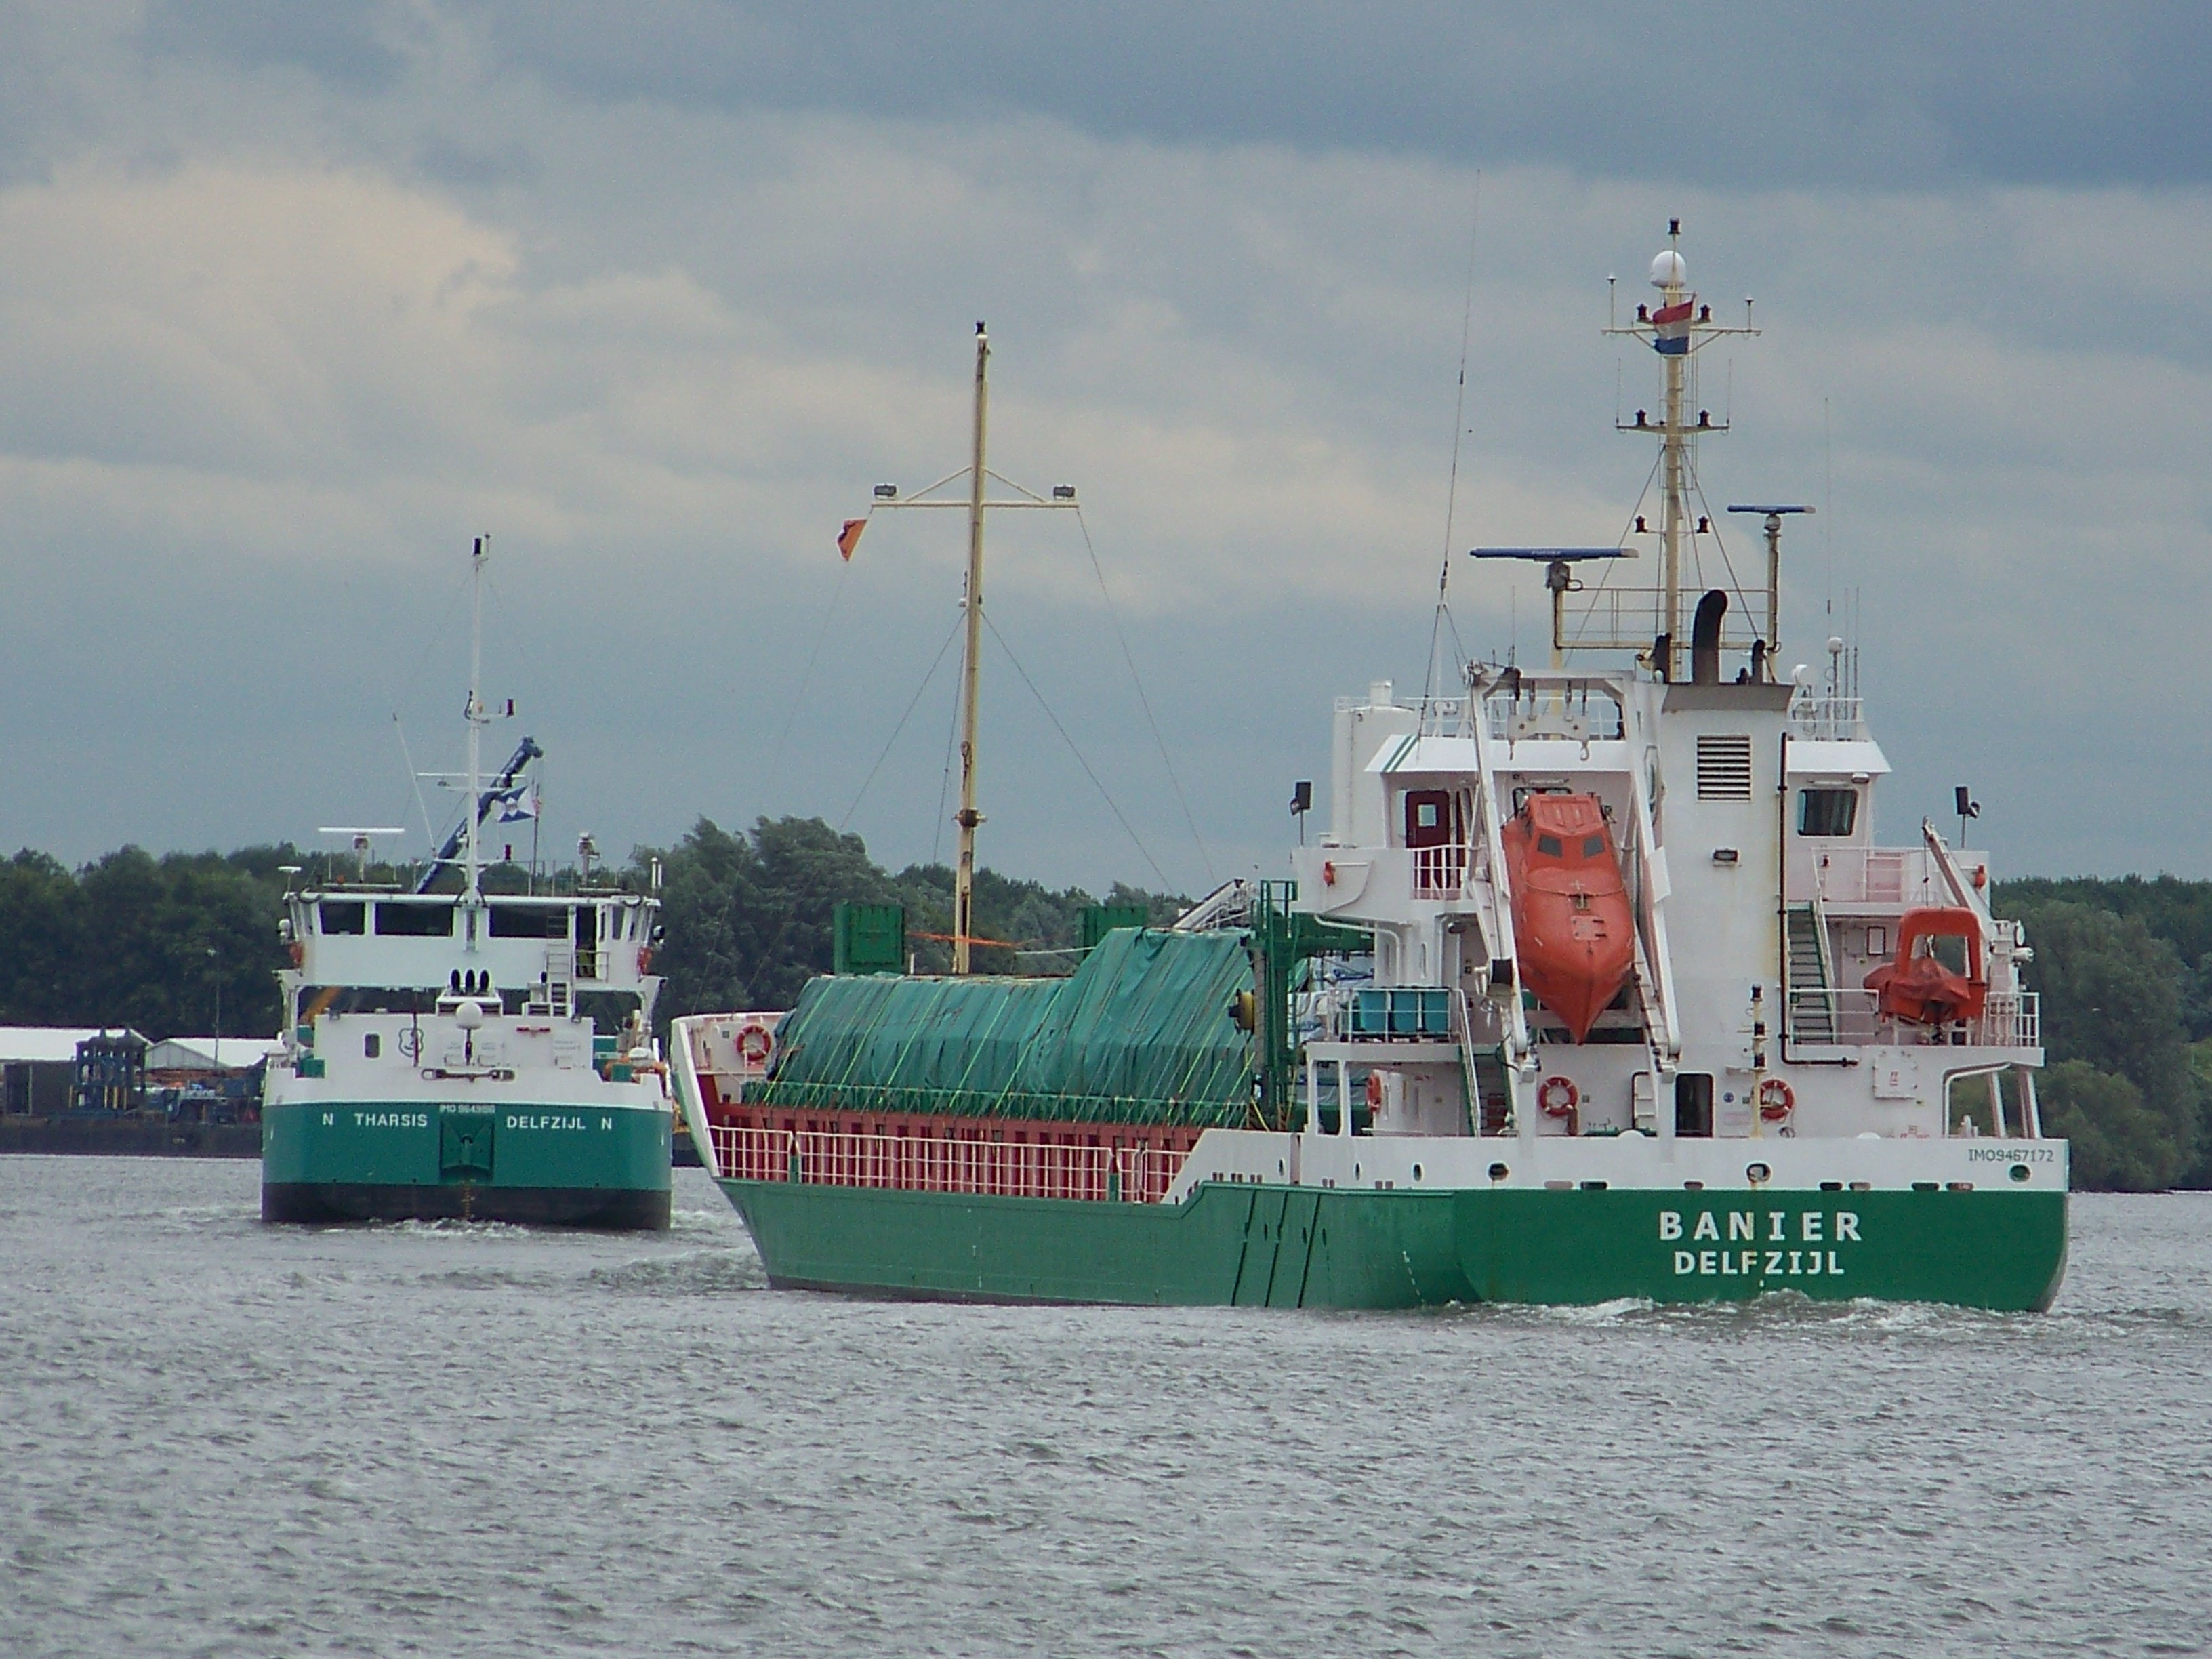 Tharsis and Banier on the Oude Maas. Picture M.Kodde